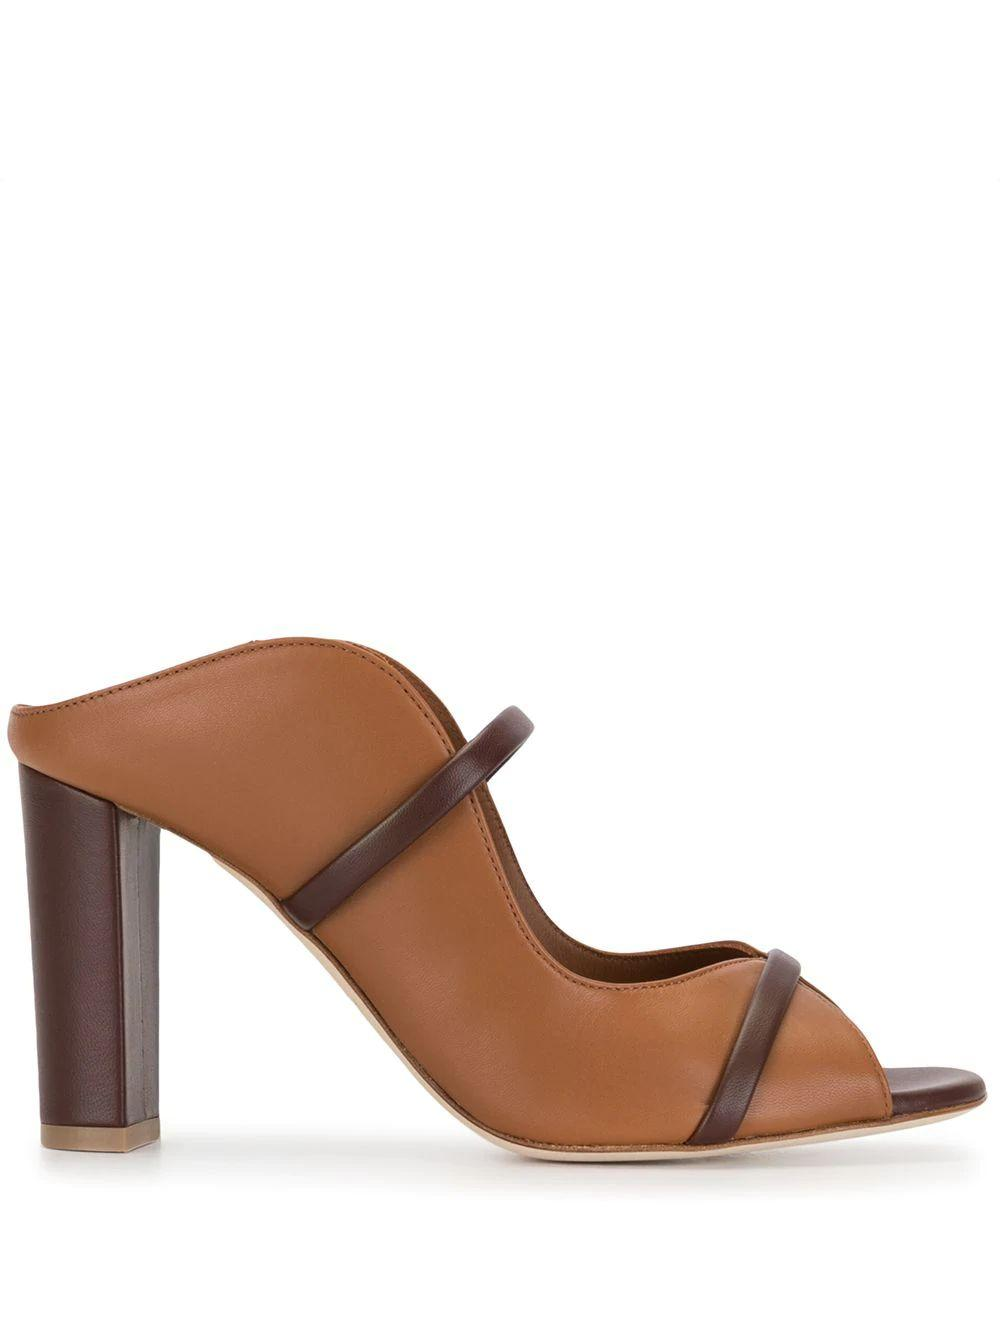 Norah 85mm Mule Item # NORAH85-16